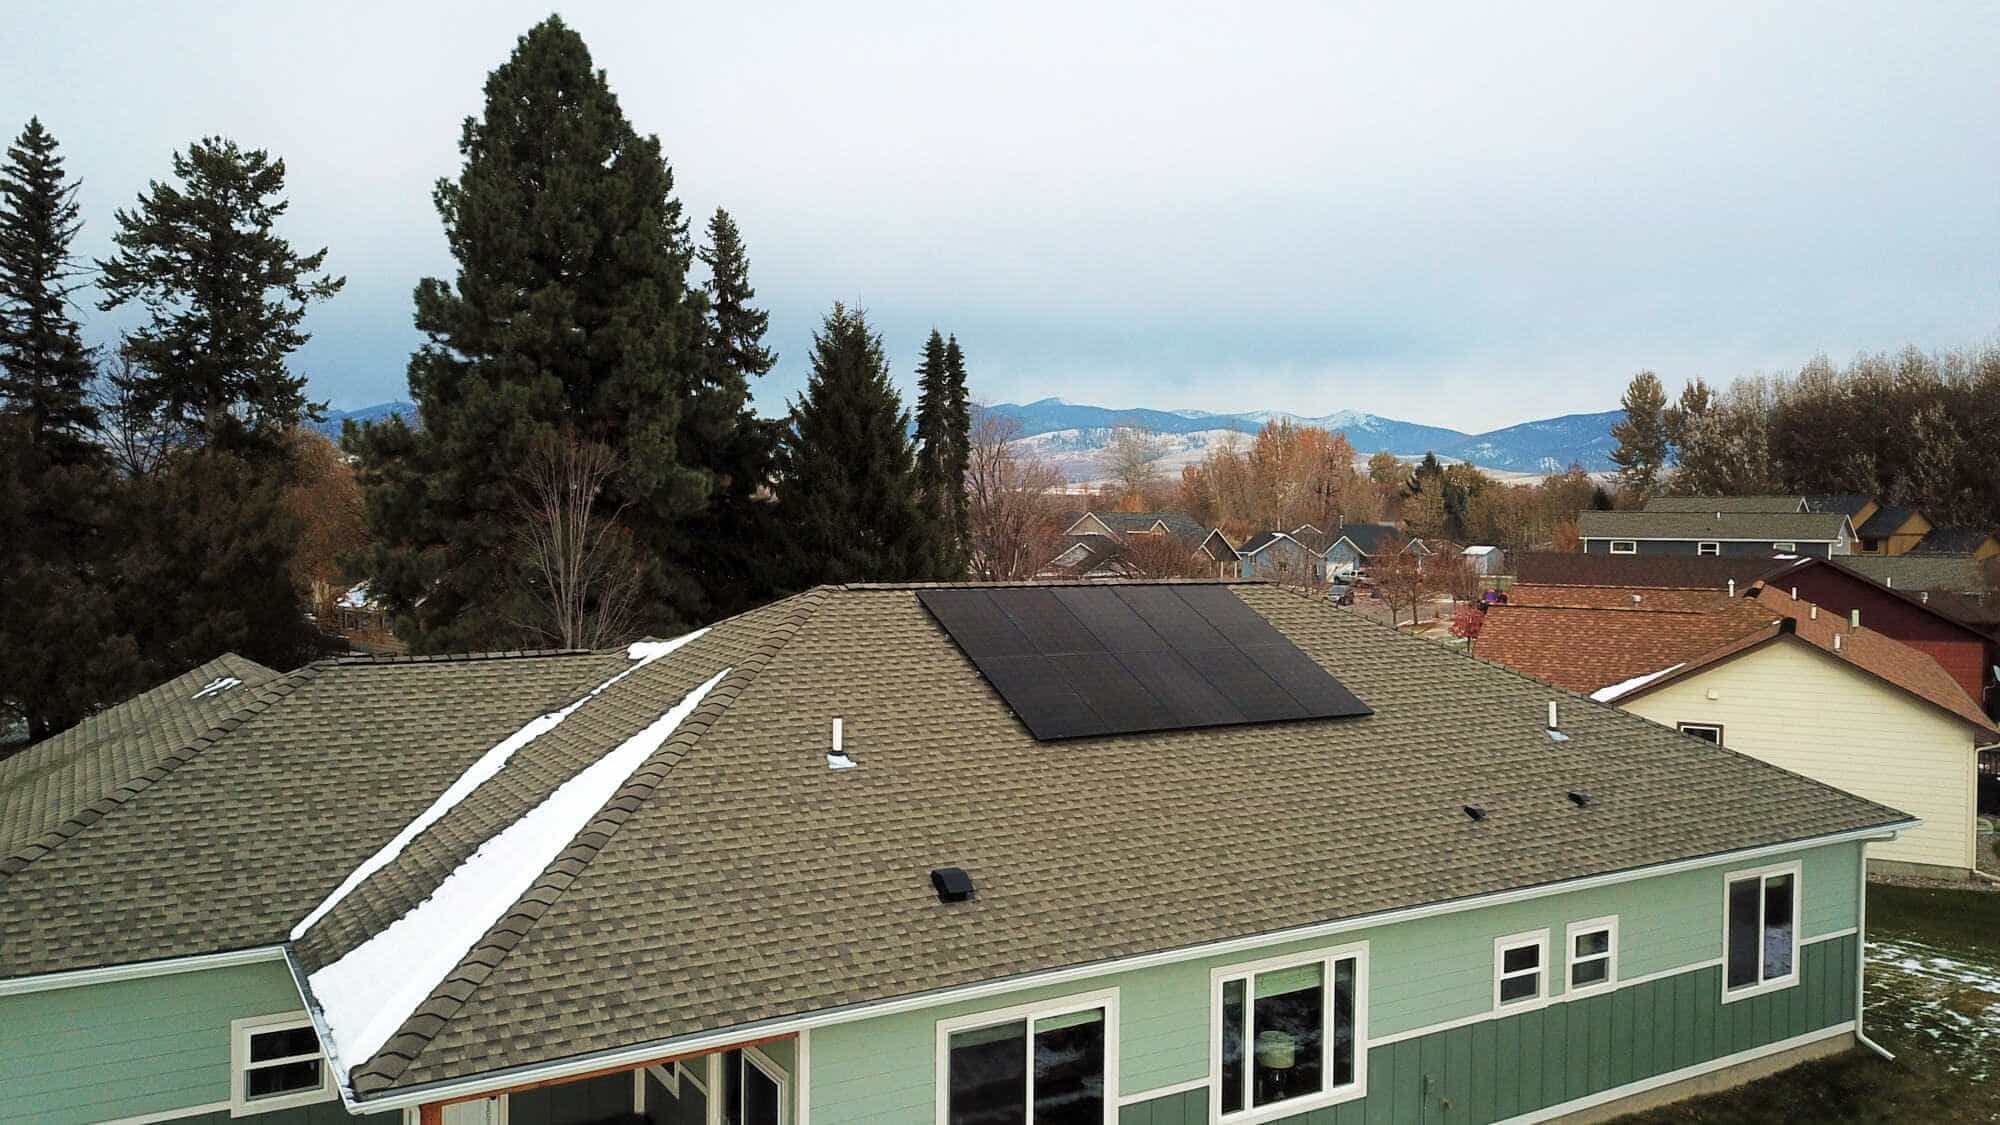 Solar panels on a roof in Missoula